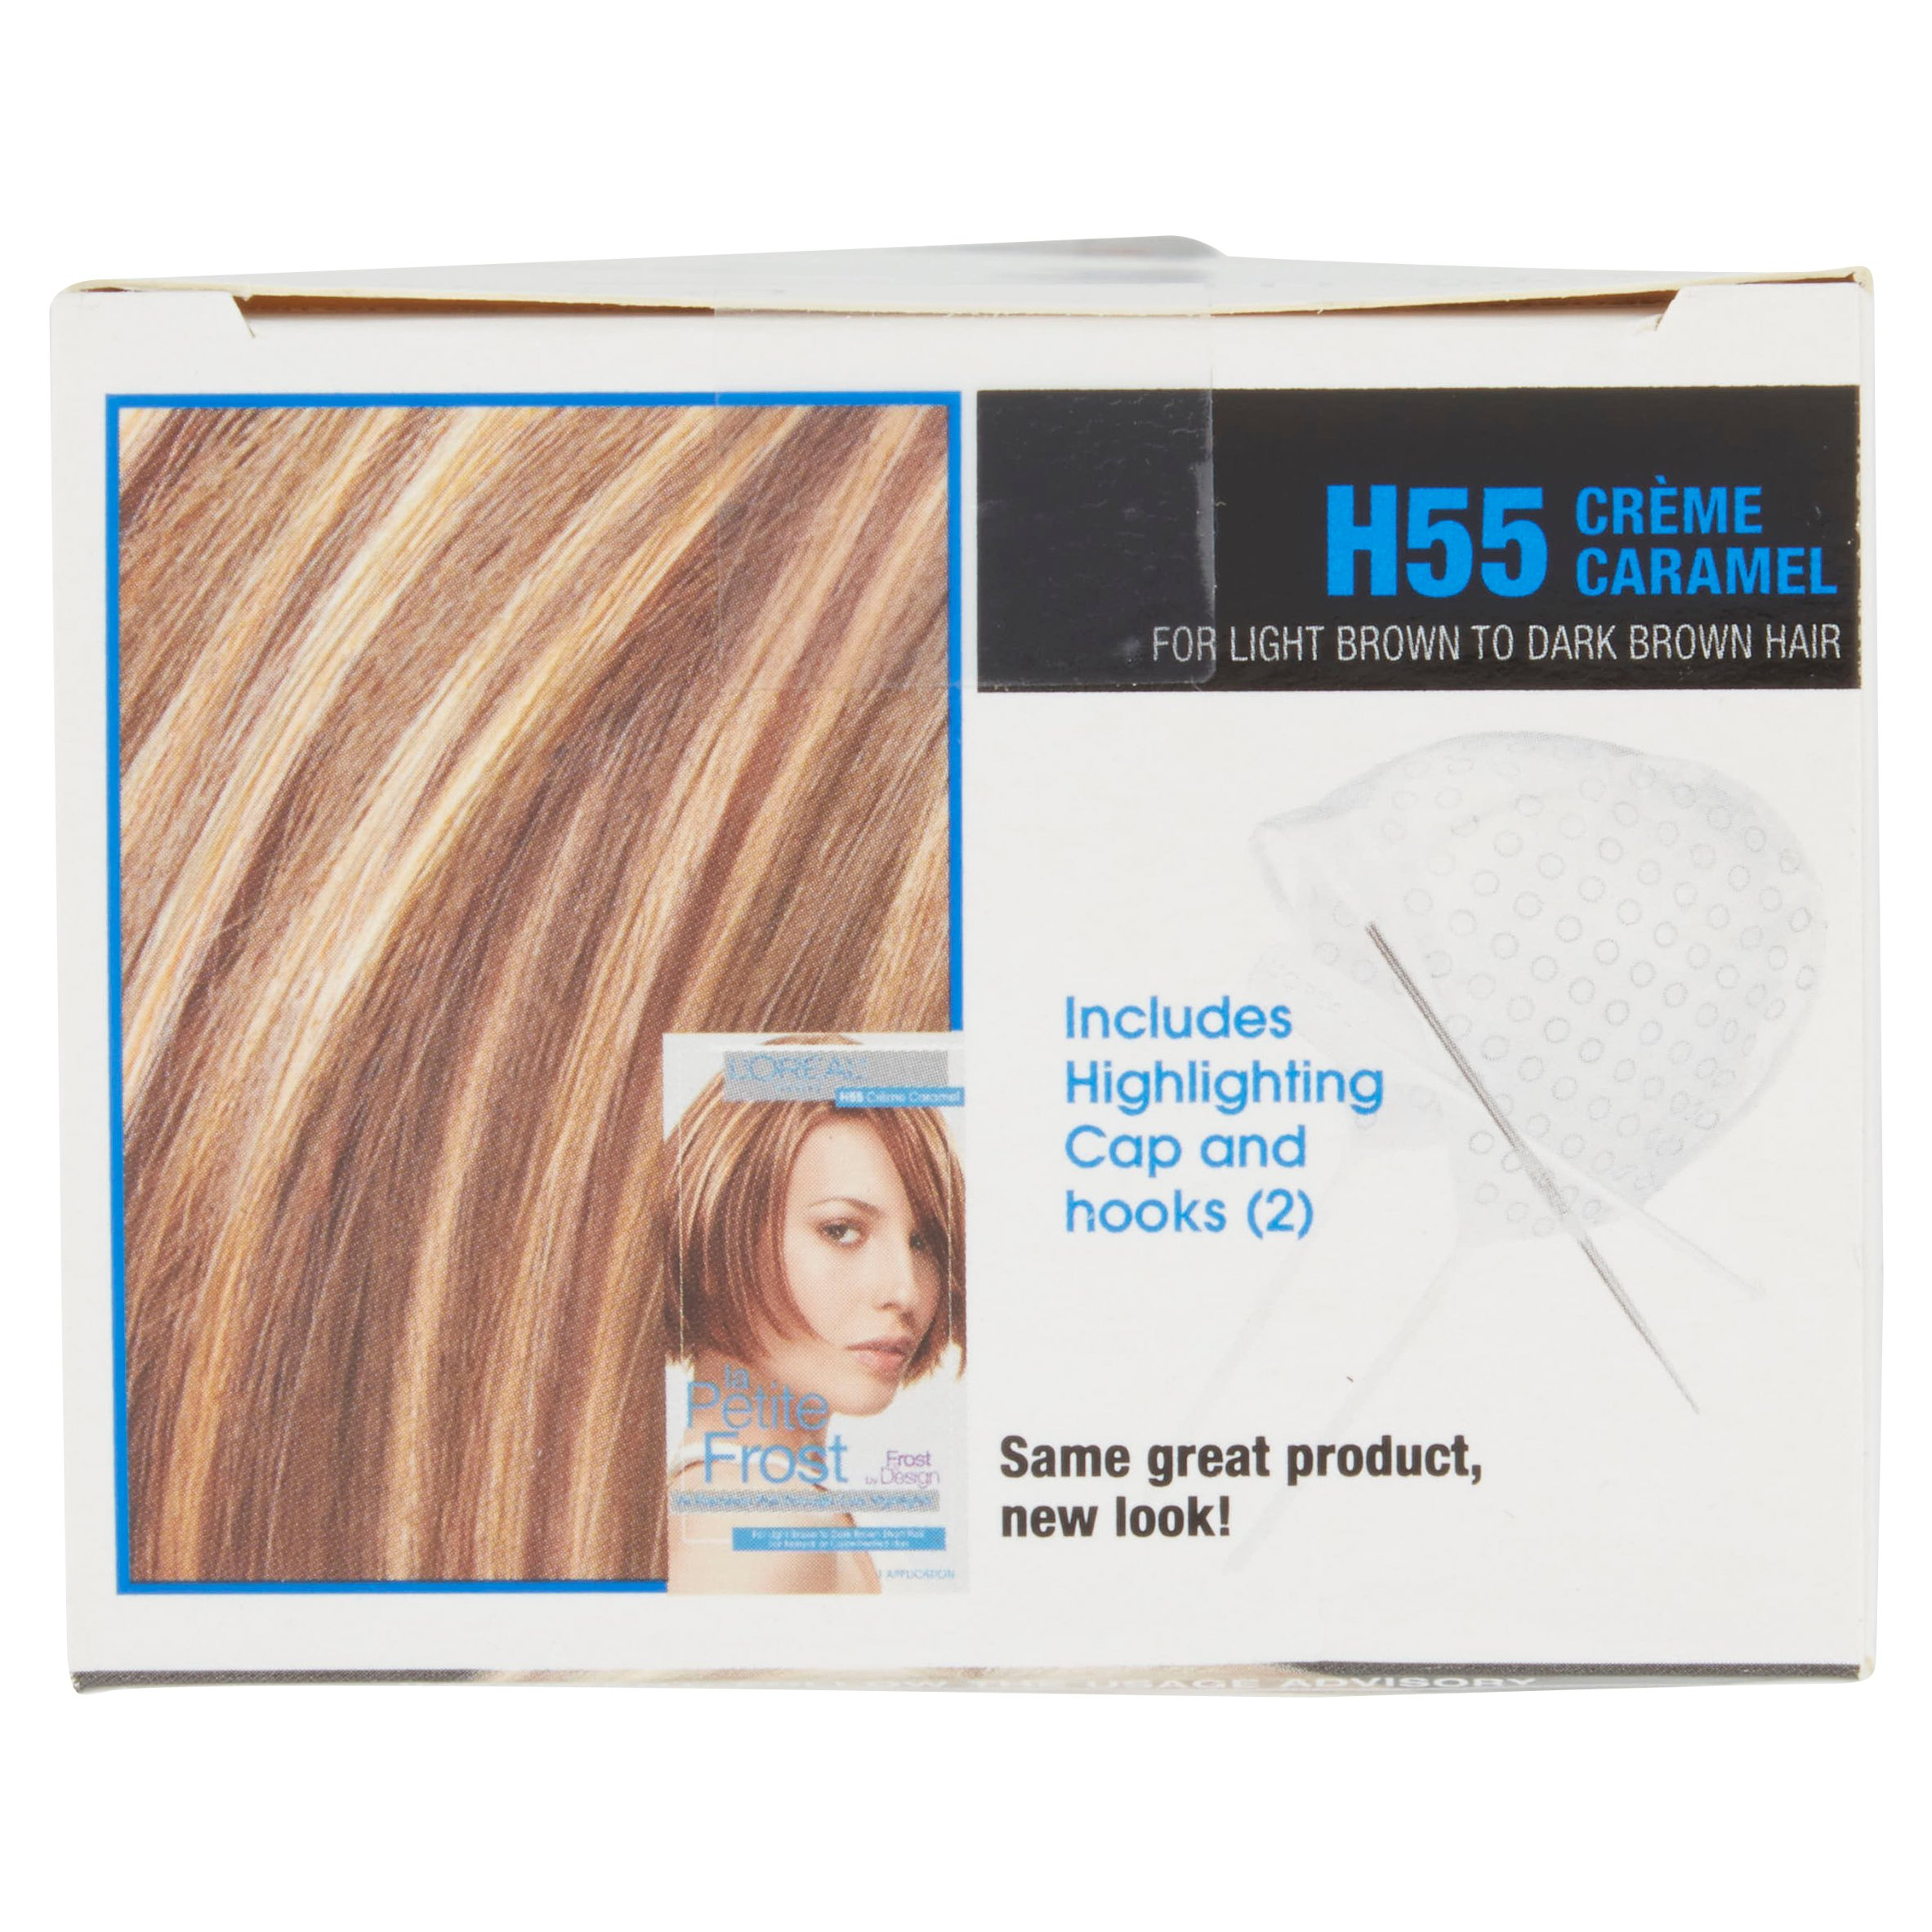 Loreal Paris Le Petite Frost Cap Hair Highlights For Shorter Hair